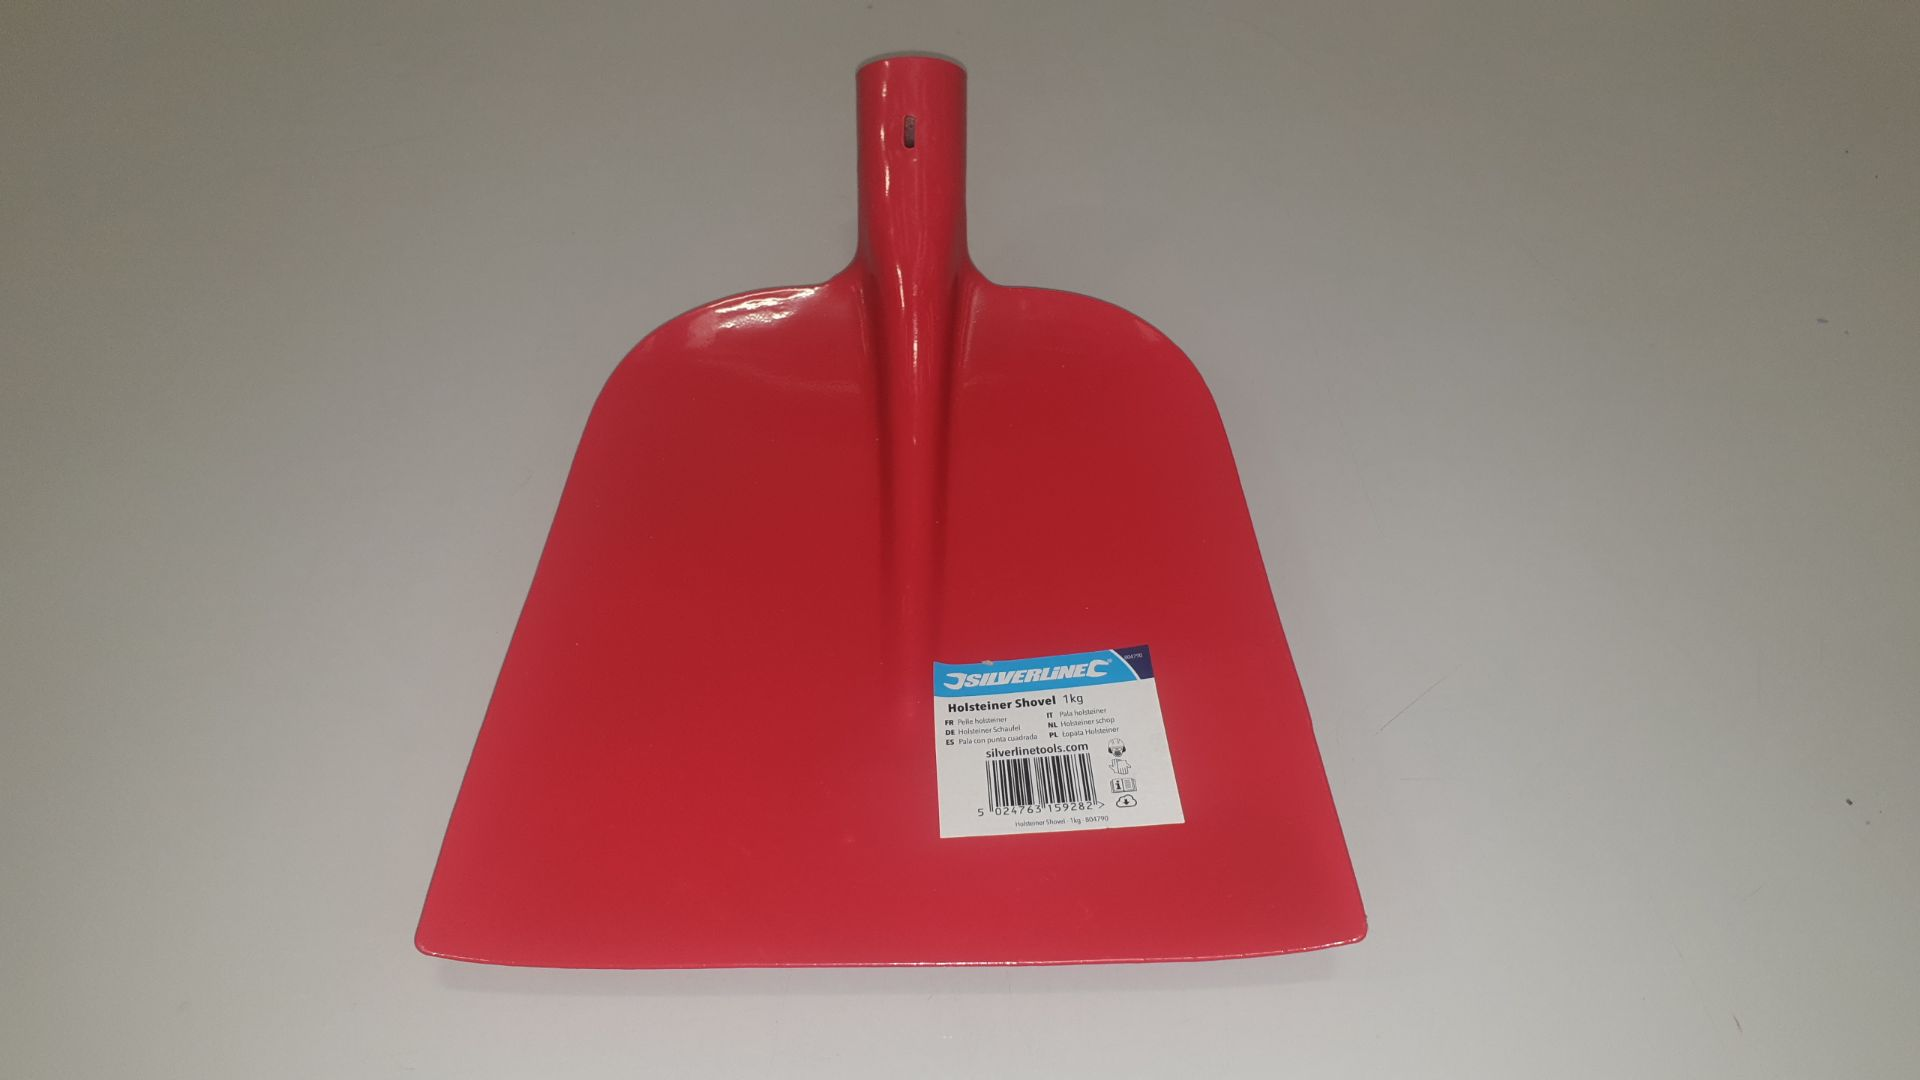 Lot 319 - 60 X BRAND NEW SILVERLINE CONTRACTORS HOLSTEINERSHOVEL 1KG (PROD CODE 804790) TRADE PRICE £5.06 EACH